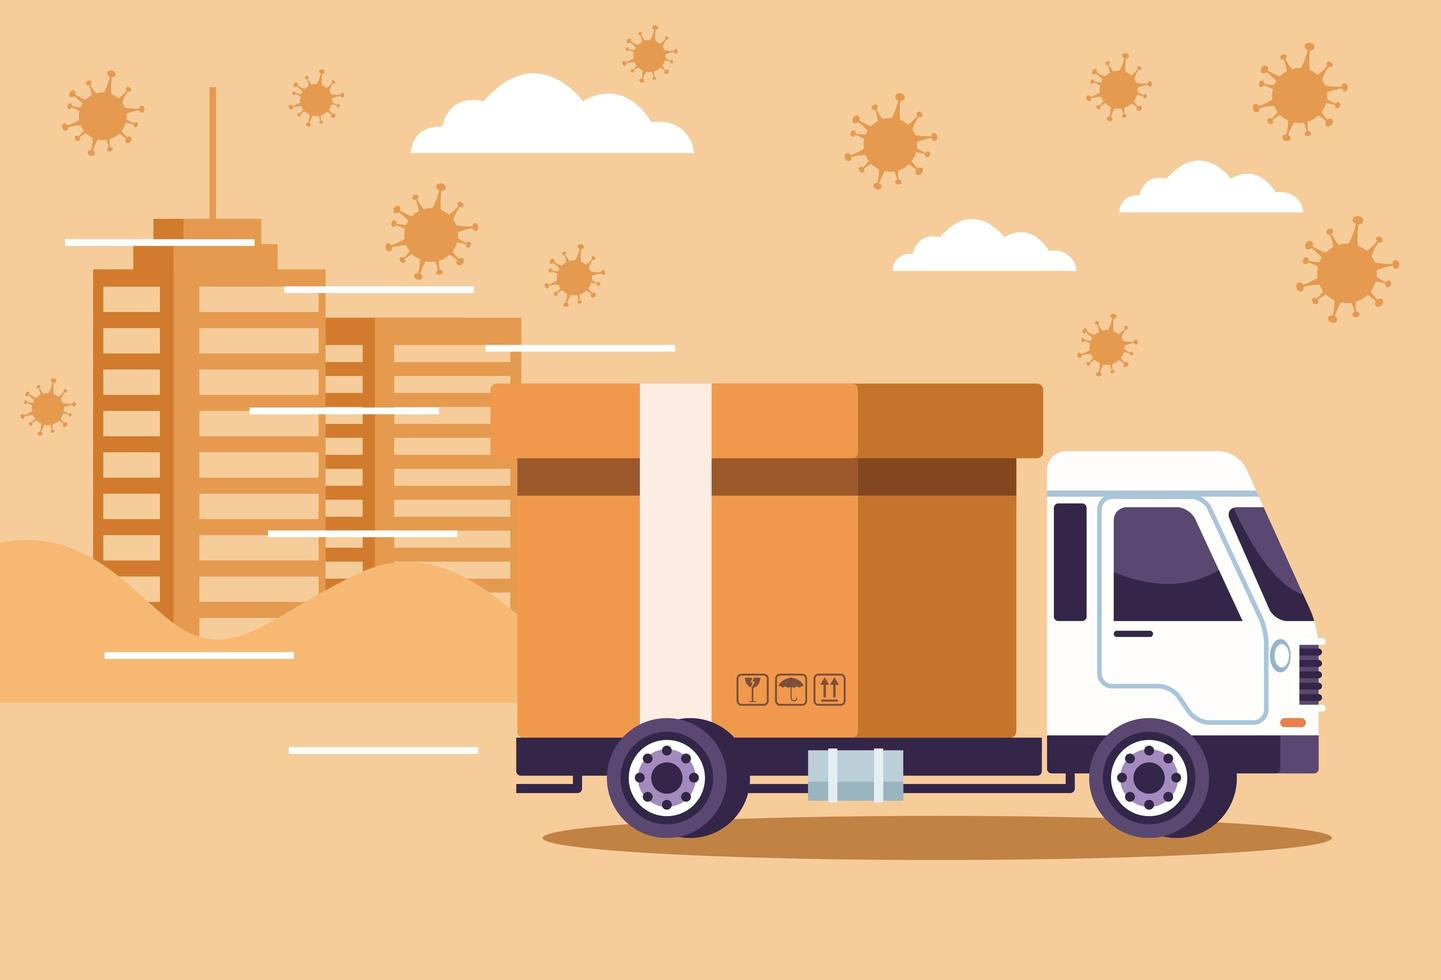 Truck delivery service with particles of coronavirus vector